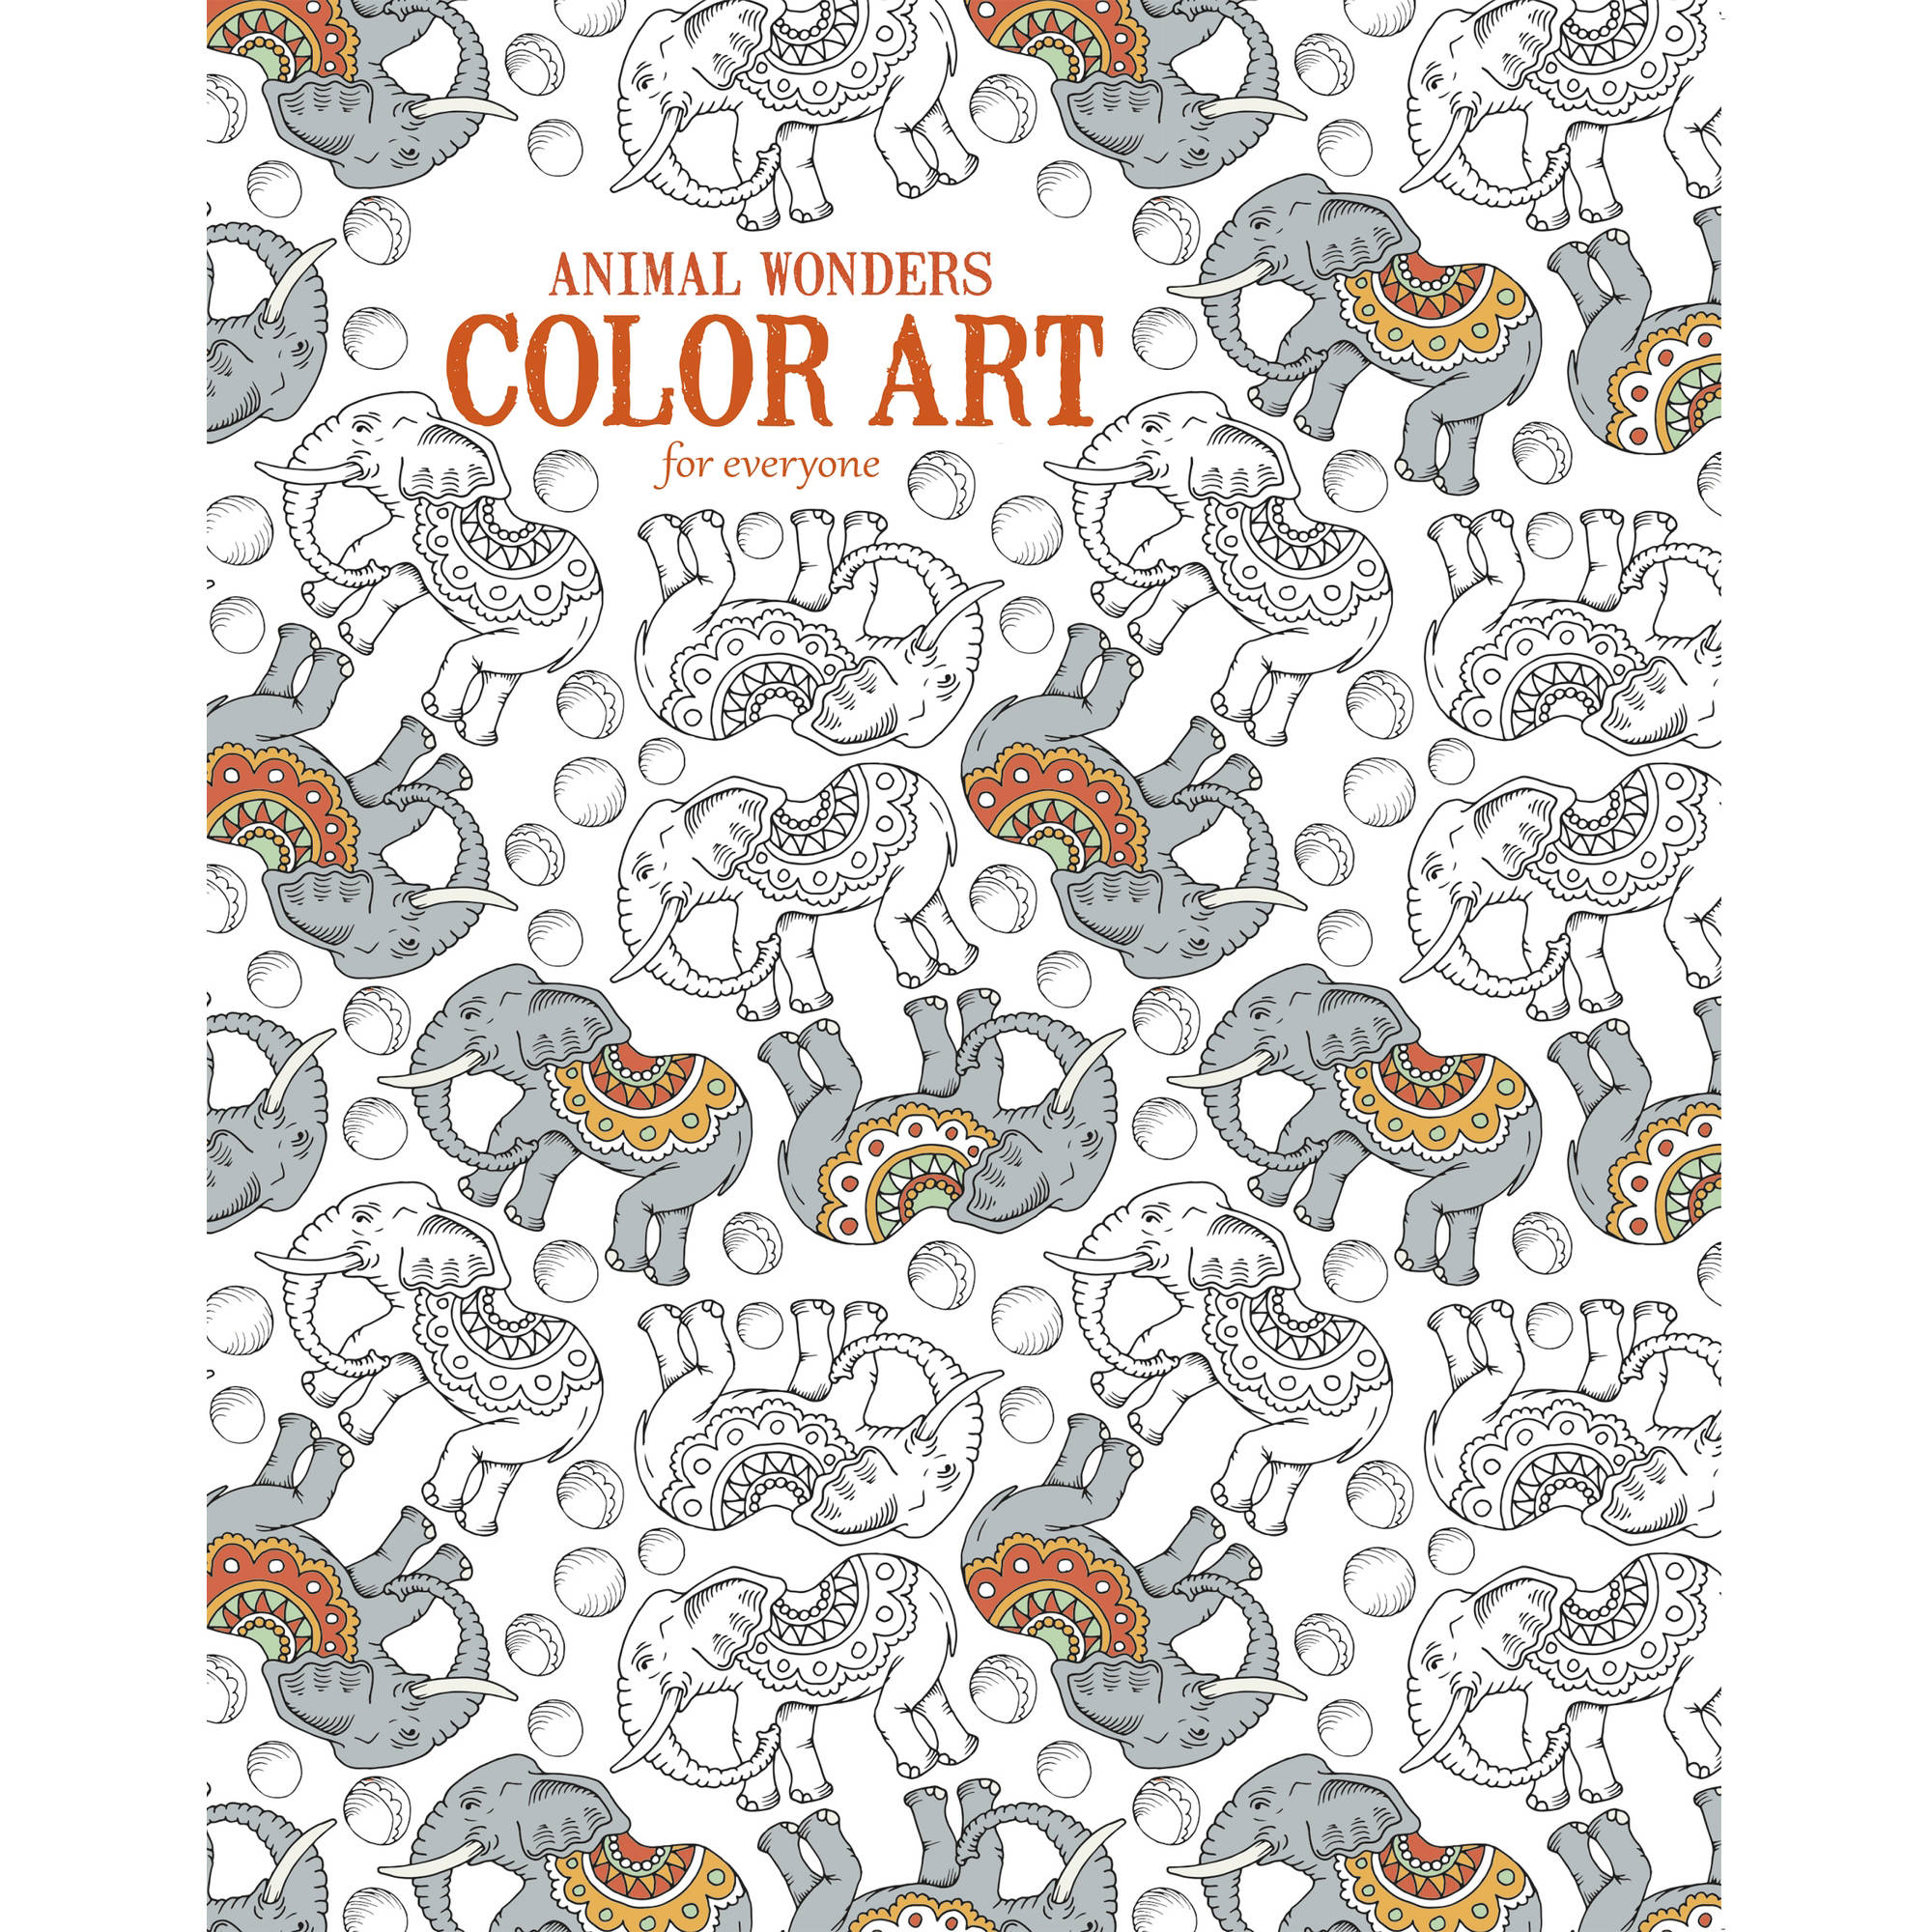 Animal Wonders Color Art for Everyone Adult Coloring Book by Leisure Arts